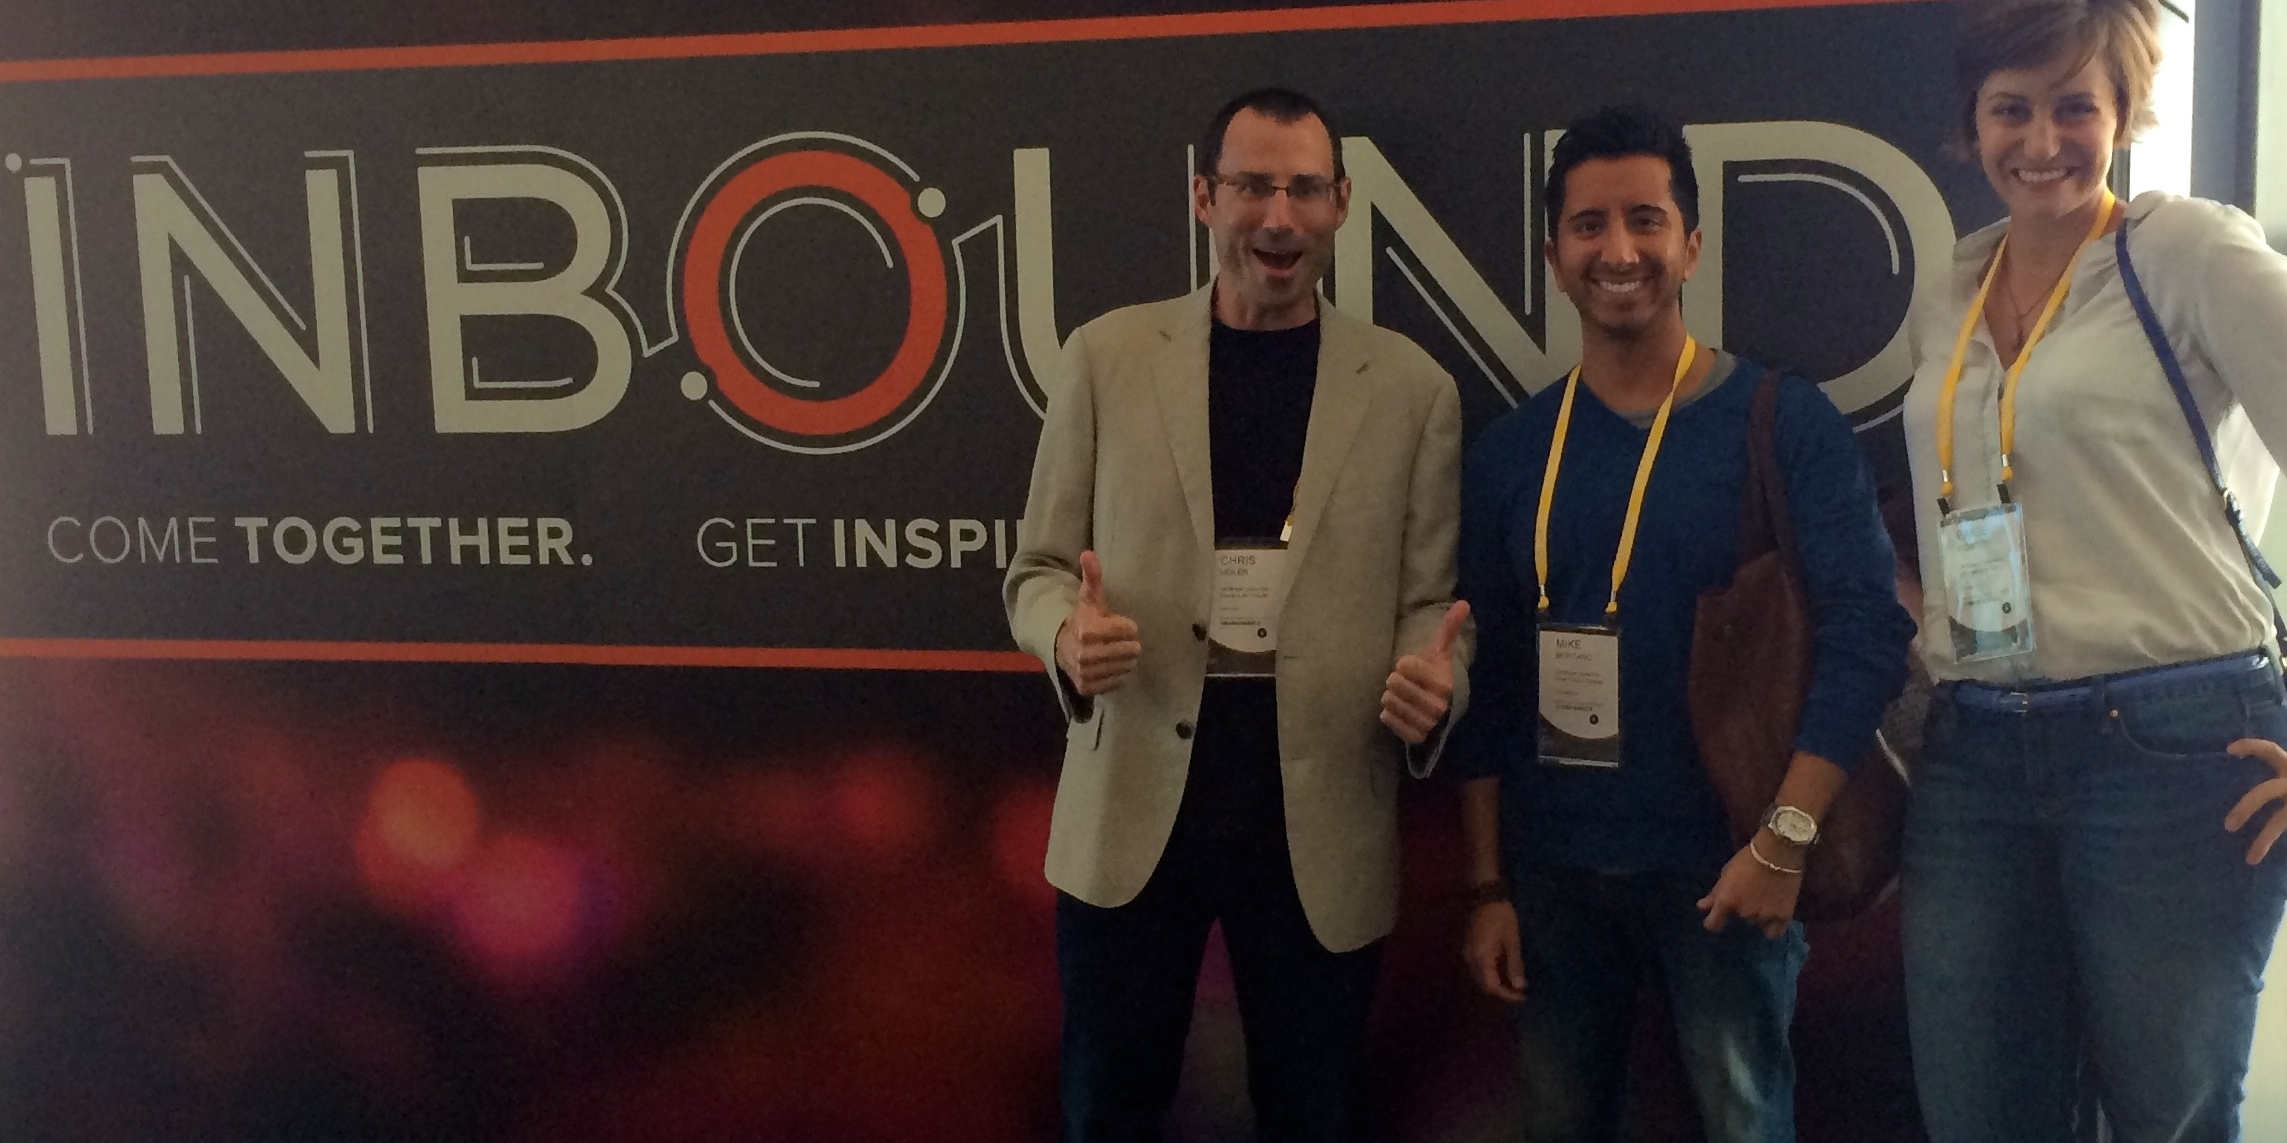 Landscape Leadership team at Inbound 2014